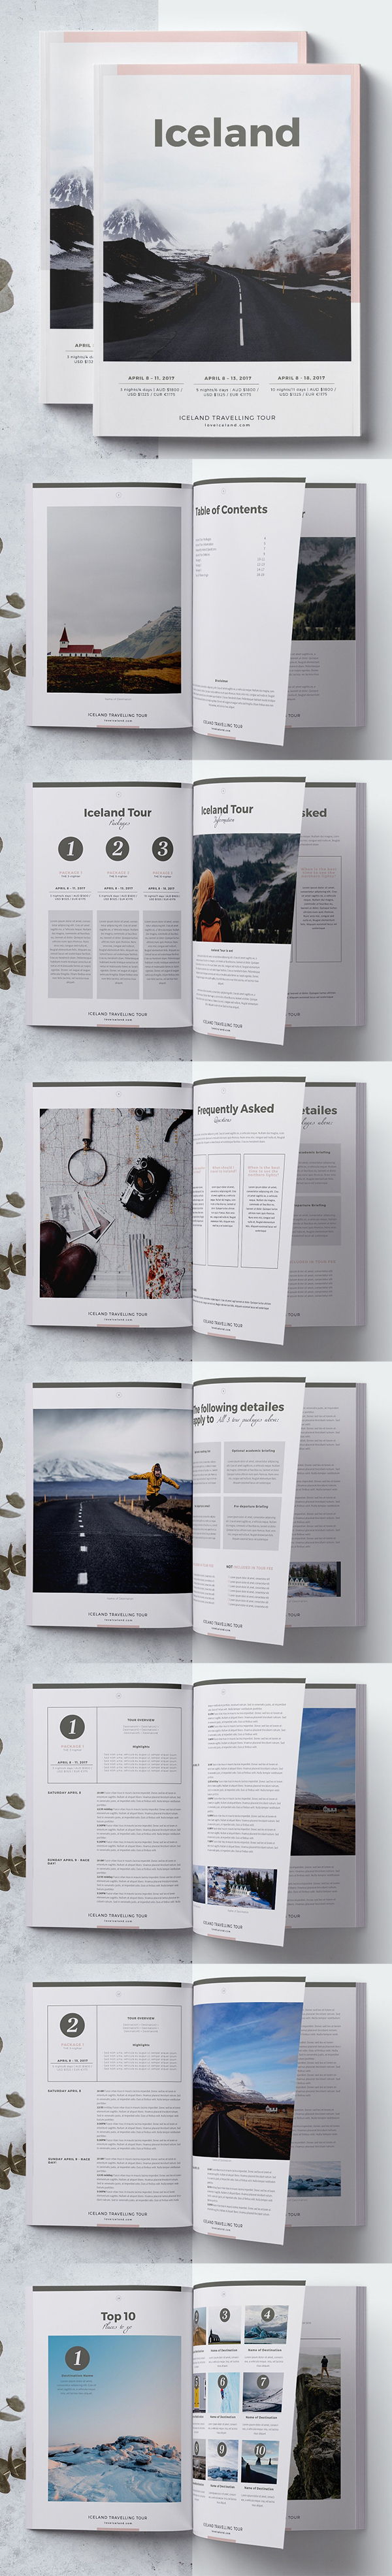 Travel Agency Guide / Brochure Template